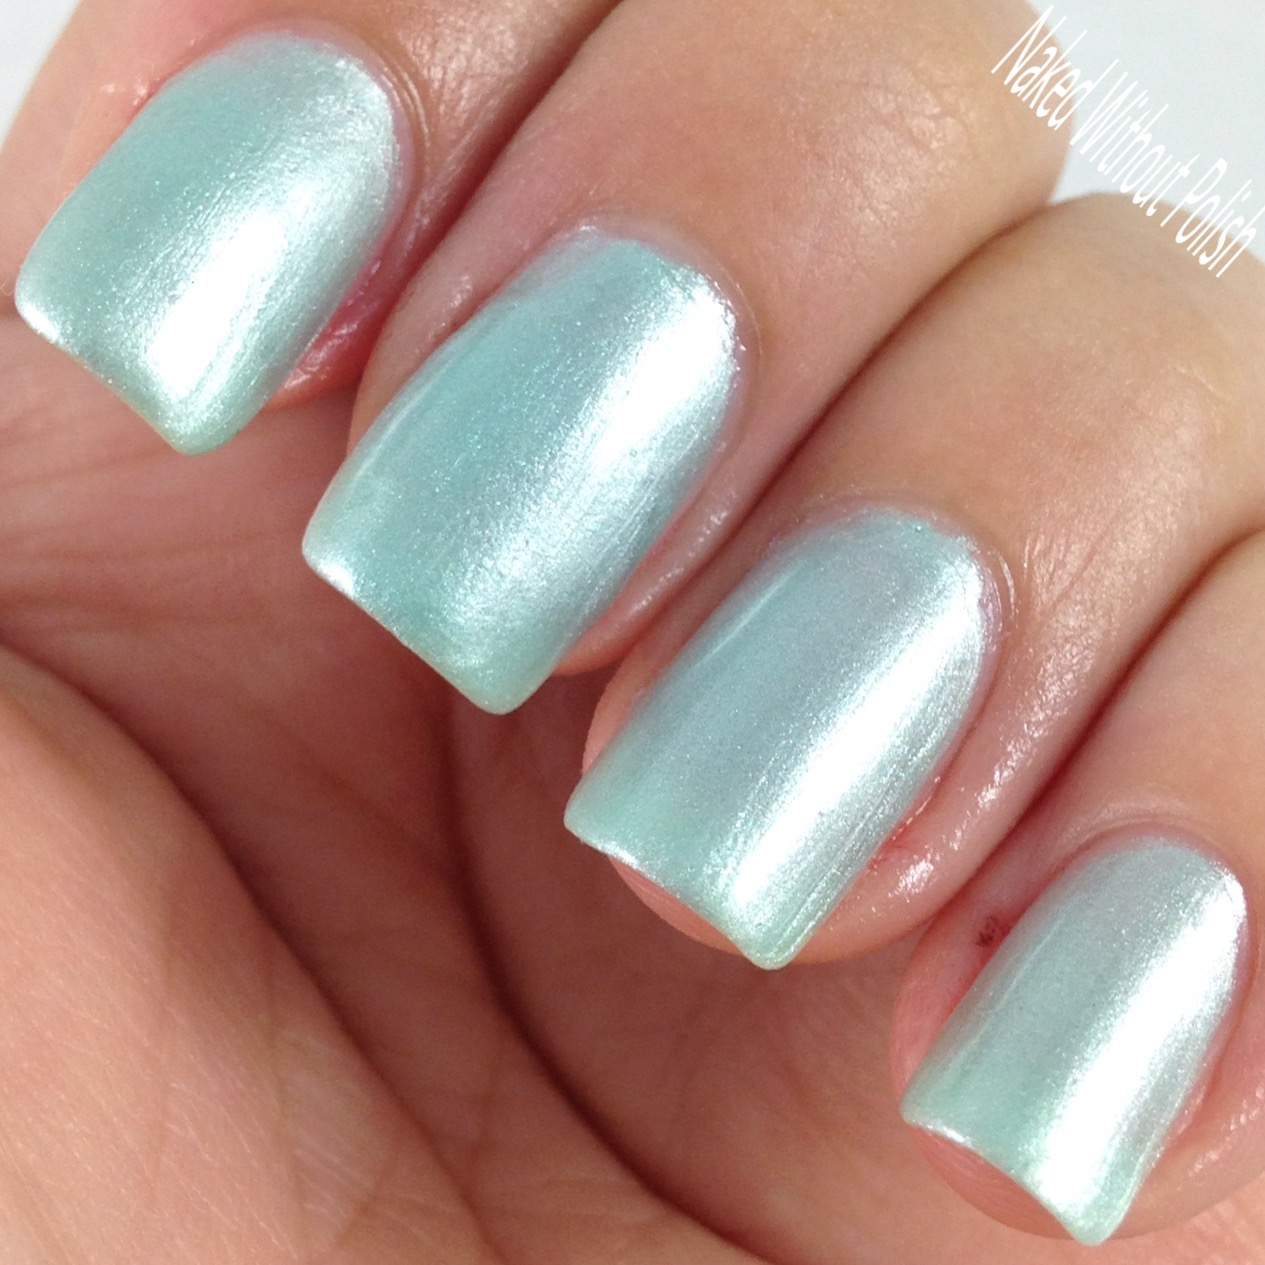 My-Stunning-Nails-Mint-Macaroon-7